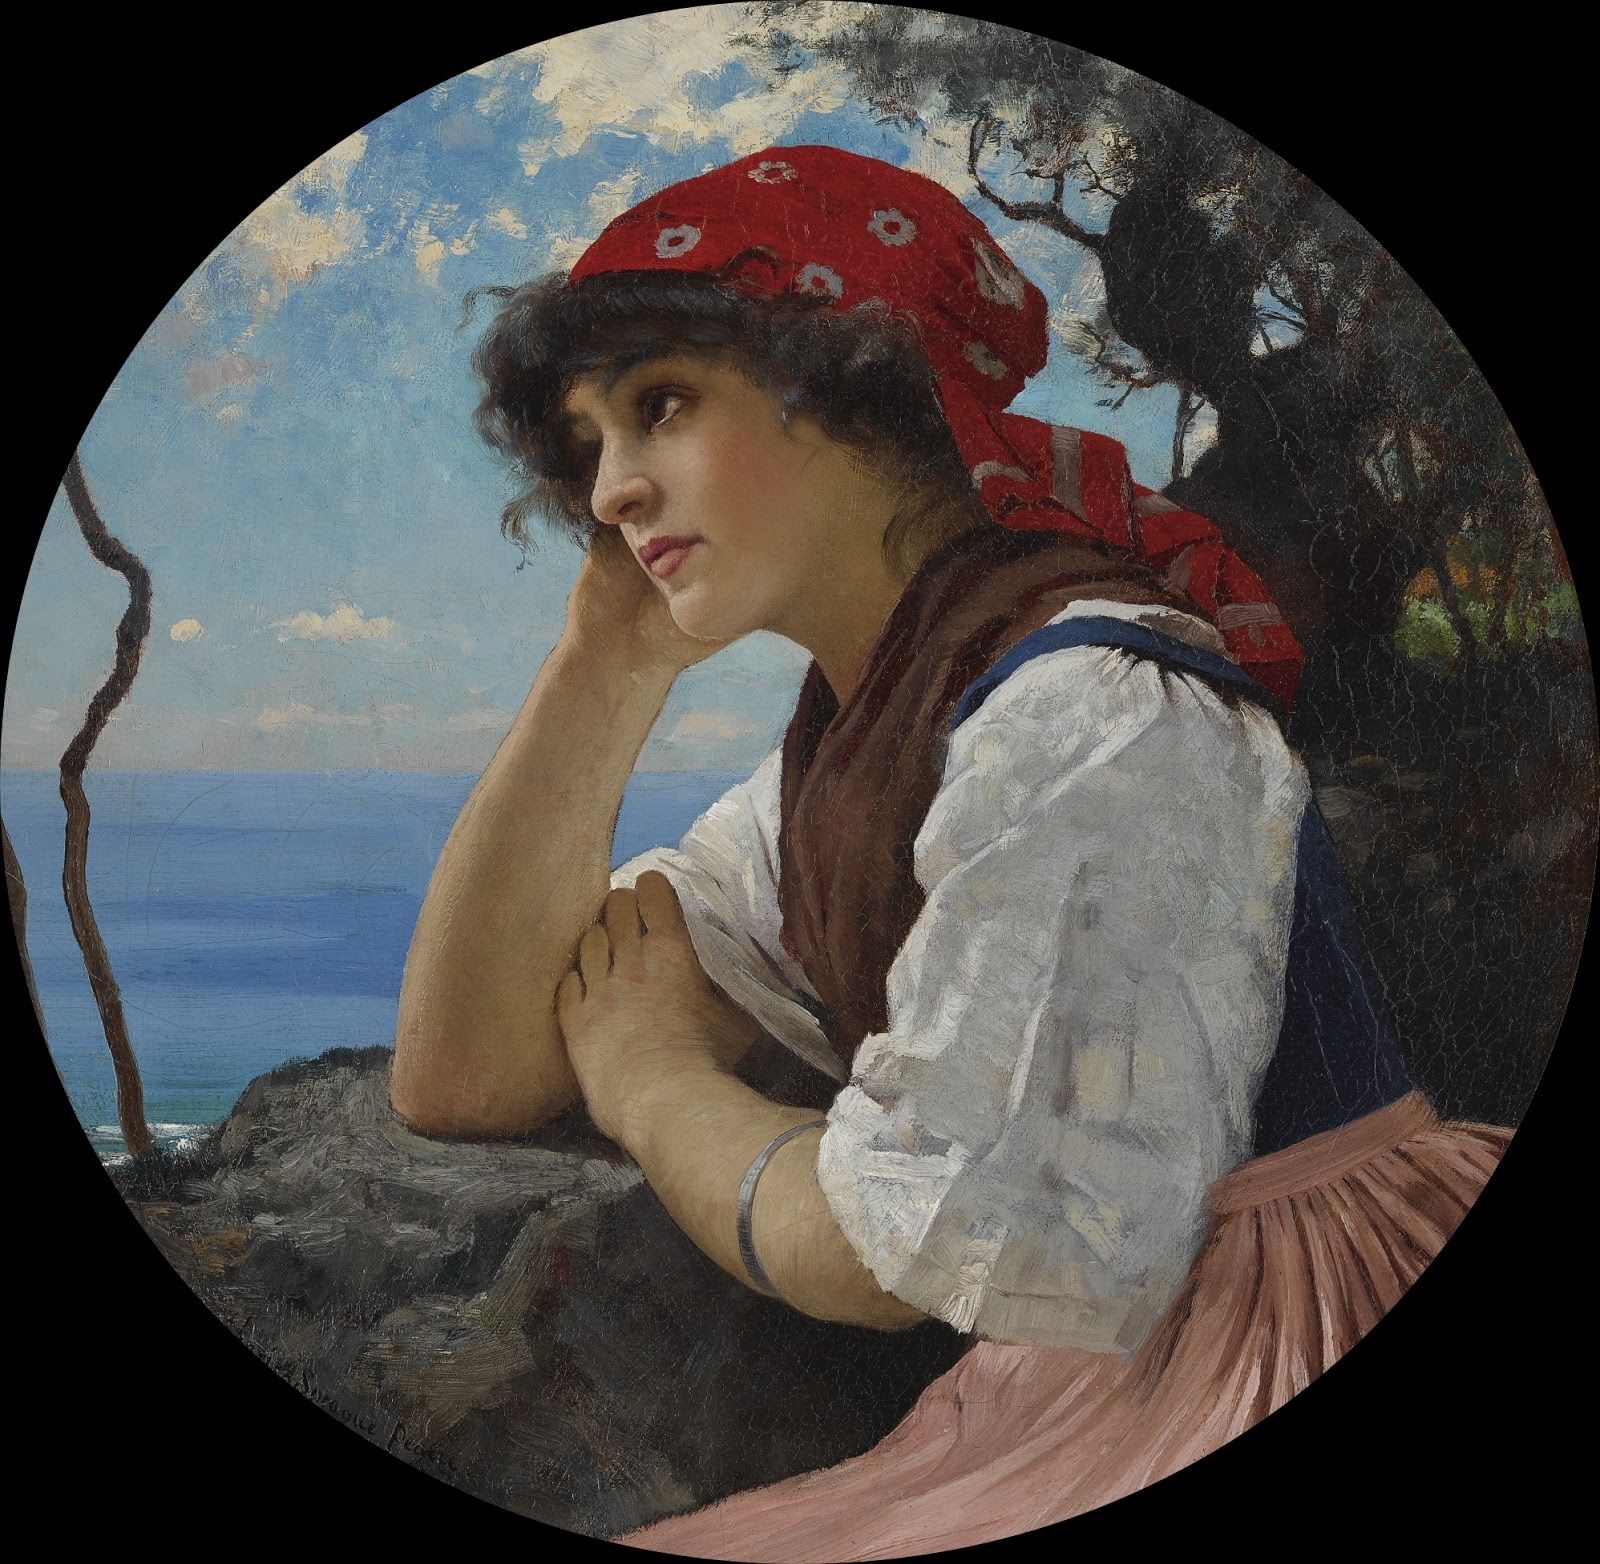 Charles Sprague Pearce the red kerchief